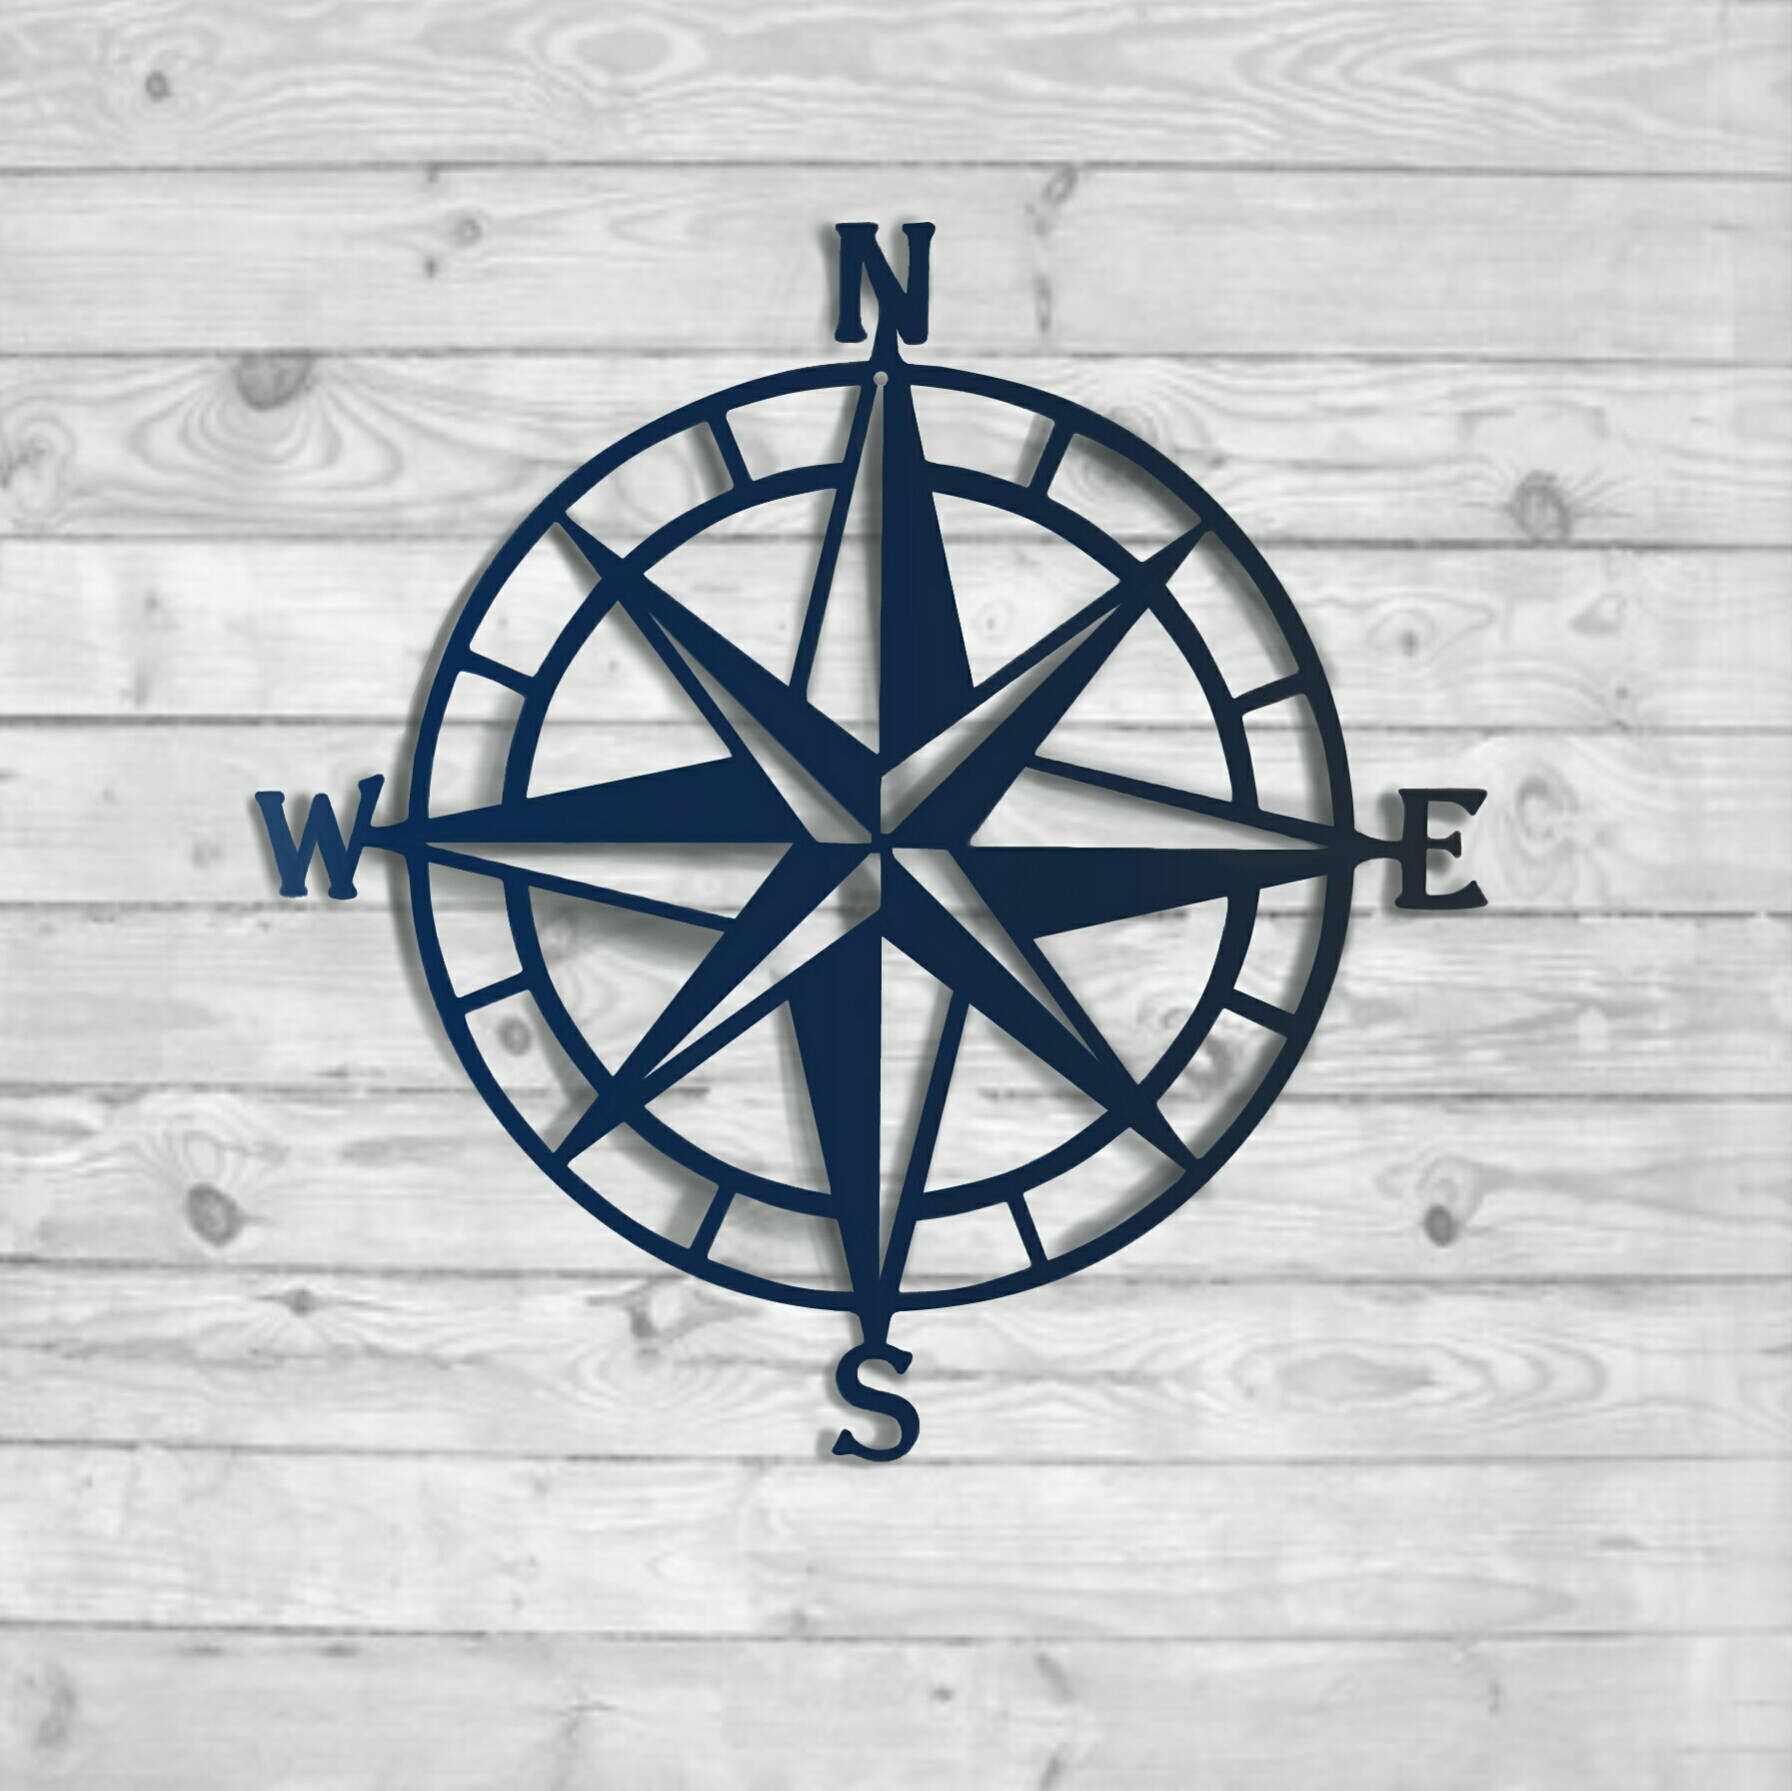 20 Best Collection Of Outdoor Metal Wall Compass Throughout Outdoor Metal Wall Compass (Photo 4 of 30)